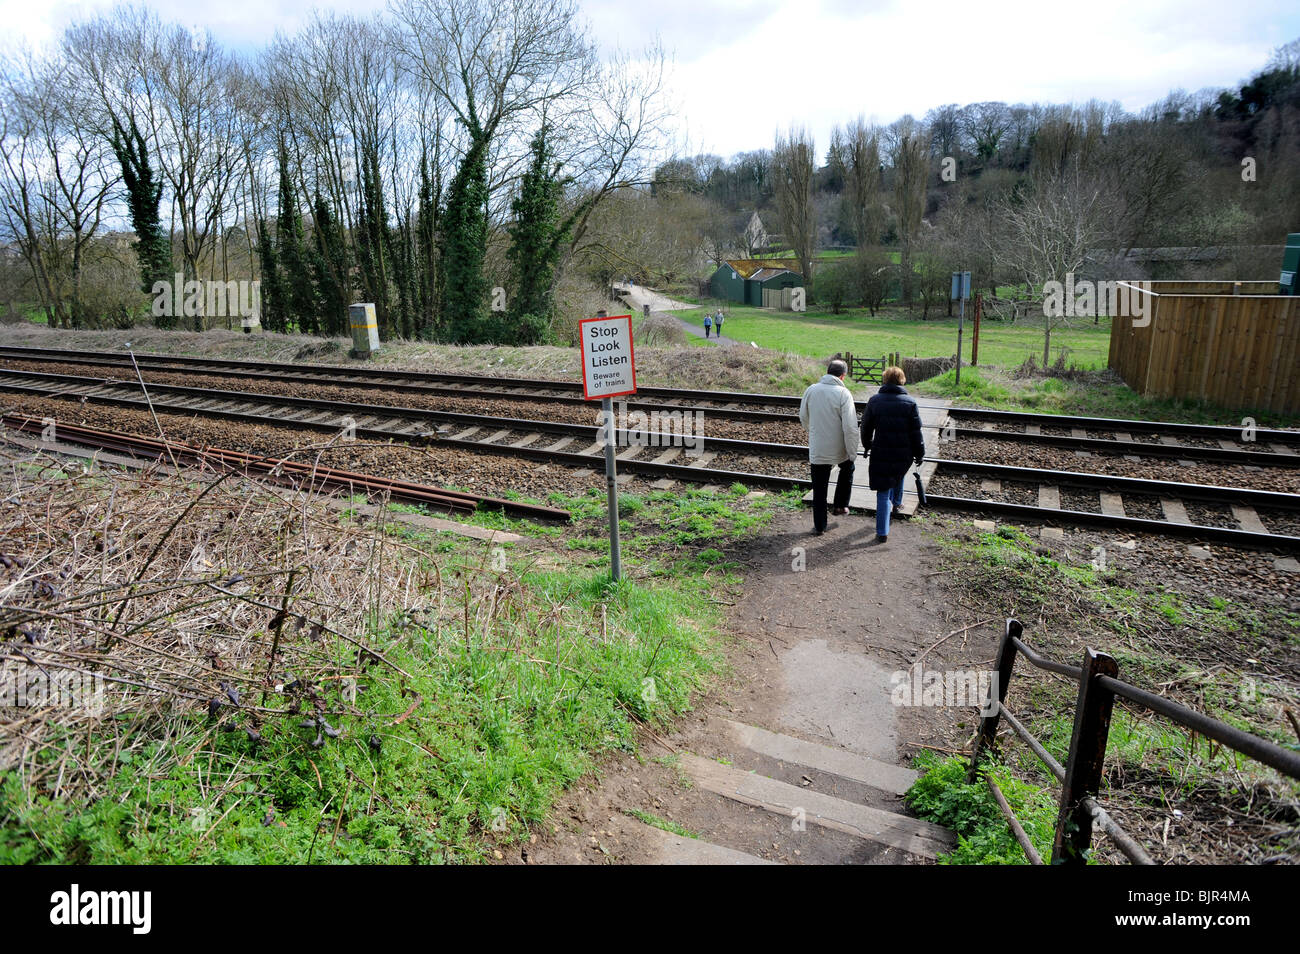 A couple walk over the railway lines at a quiet crossing point in the country - Stock Image